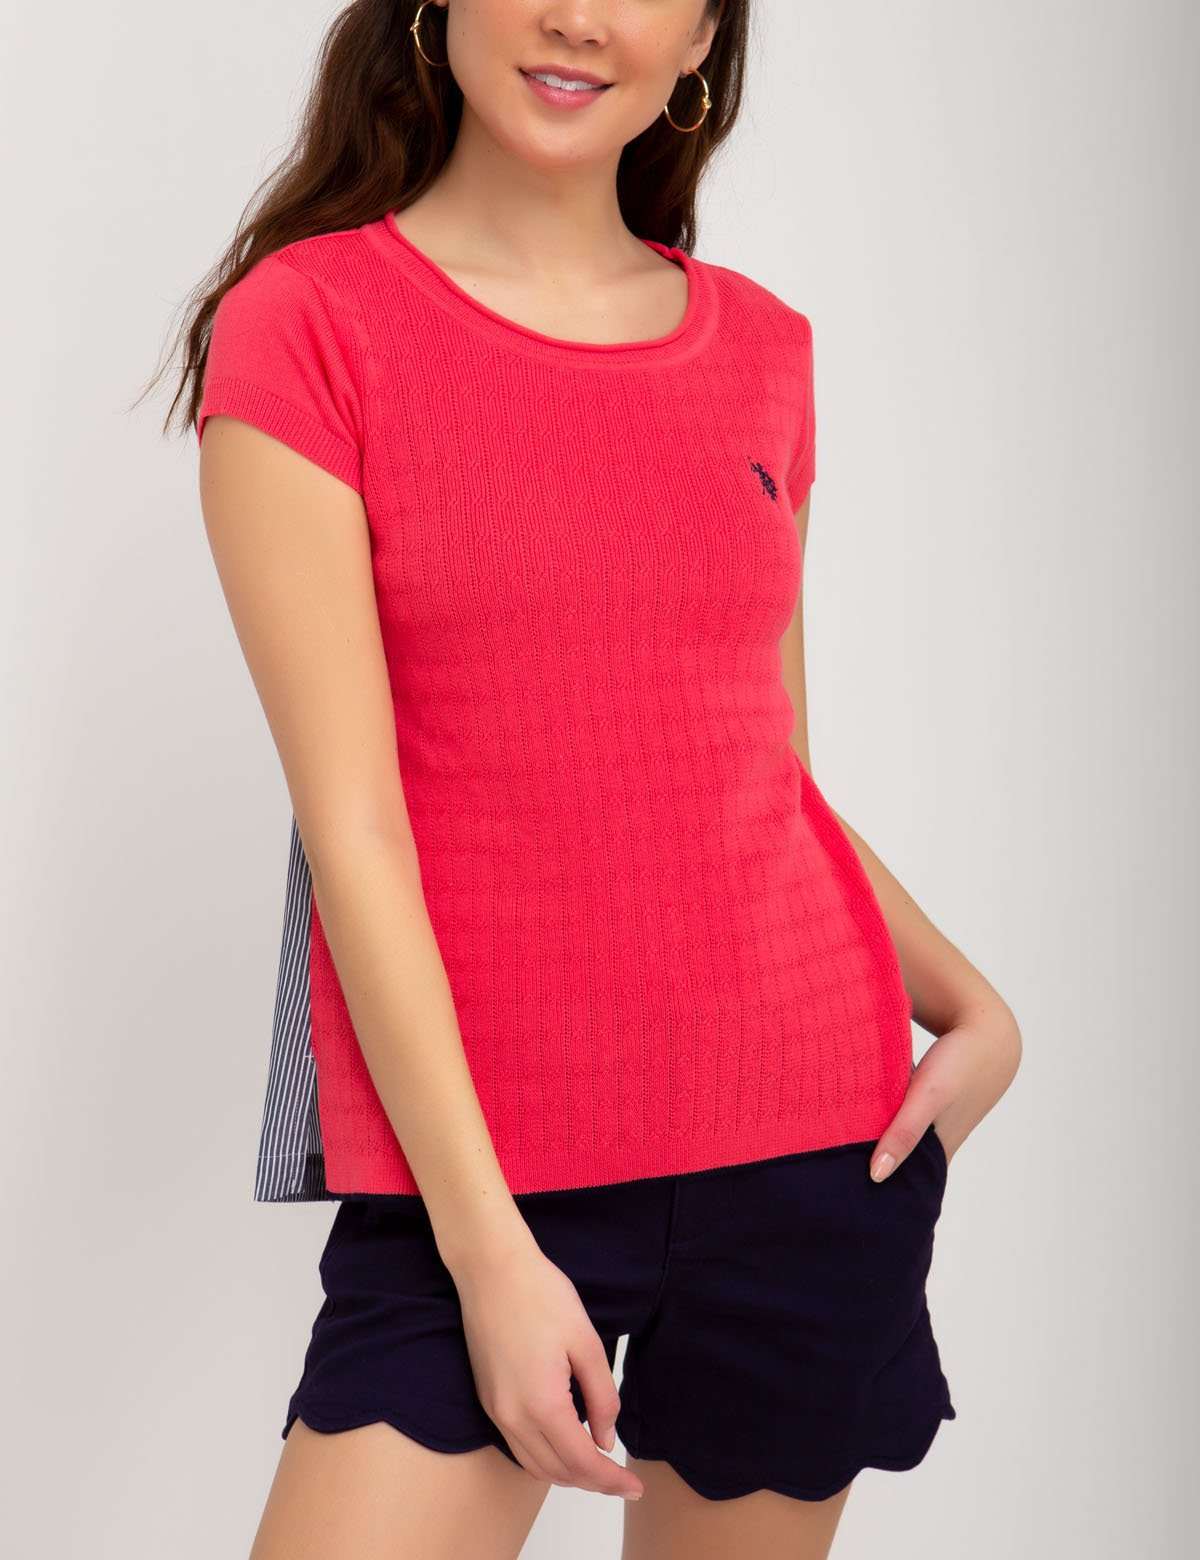 CONTRAST SWEATER - U.S. Polo Assn.